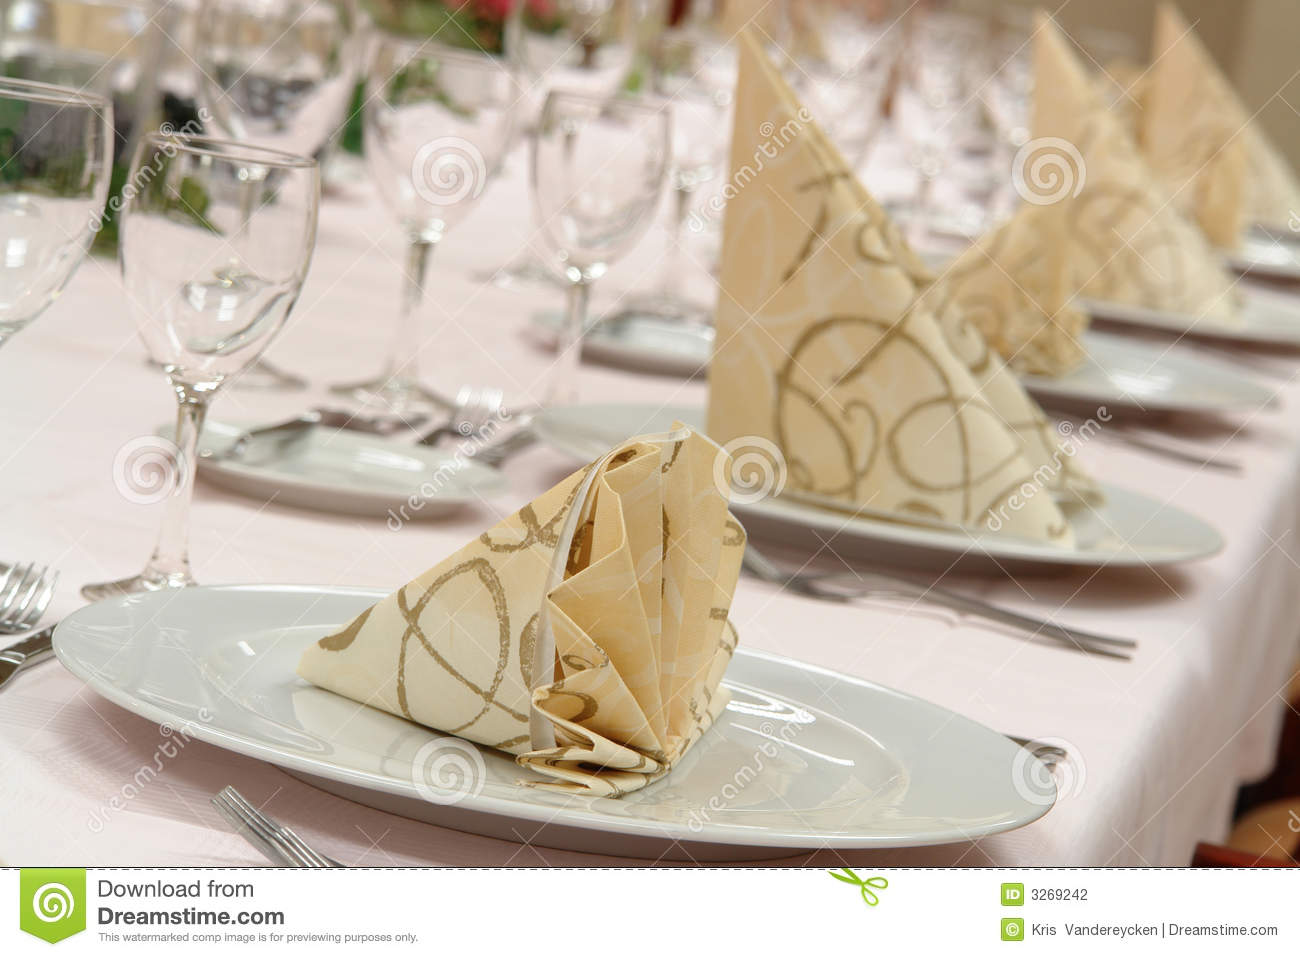 Restaurant table setup - Restaurant Table Setting